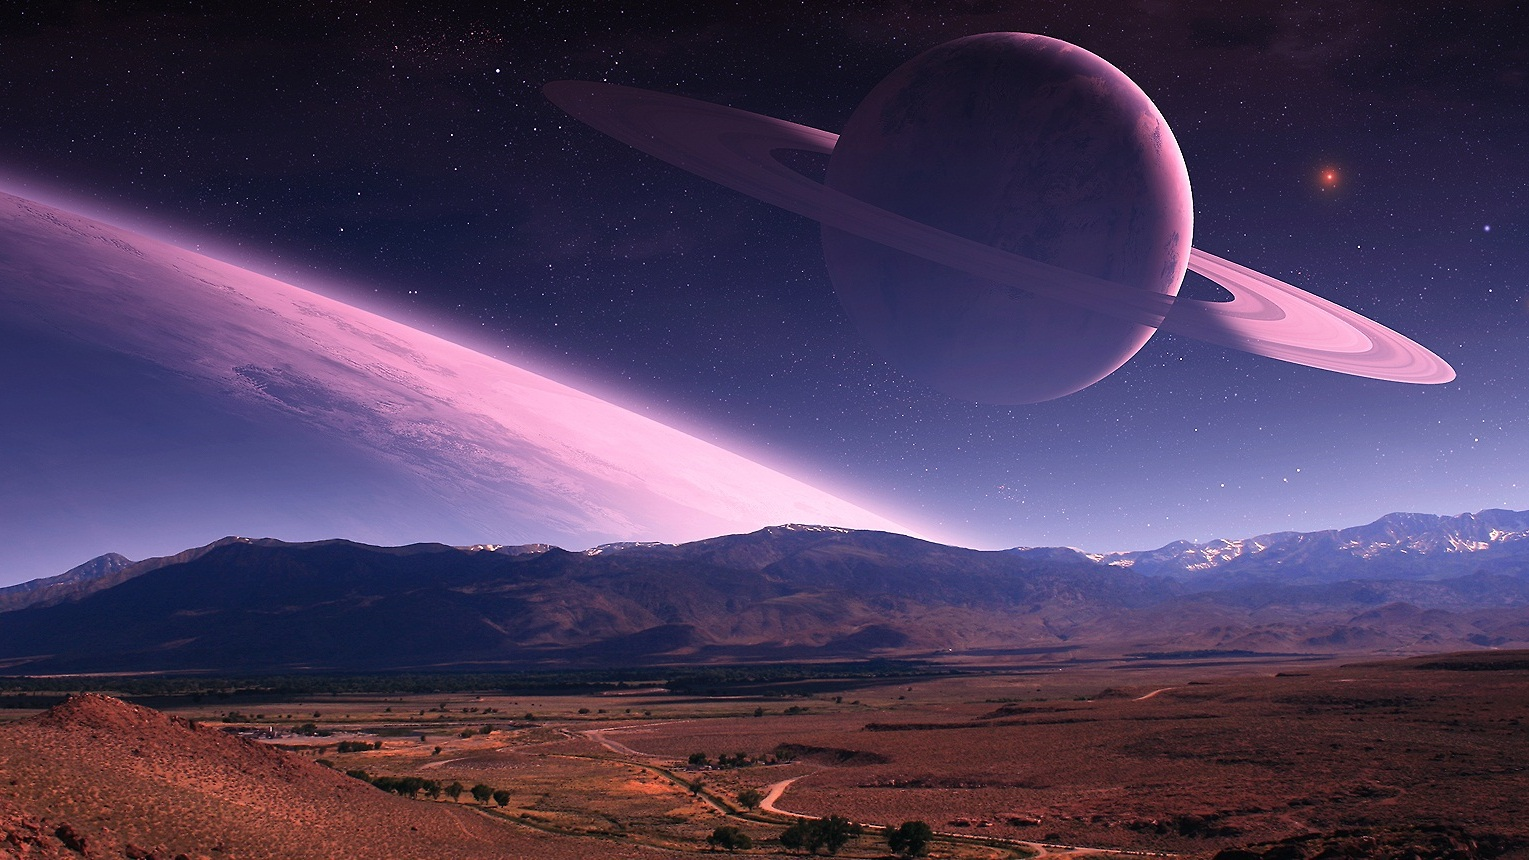 exoplanet backgrounds free - 1200×630